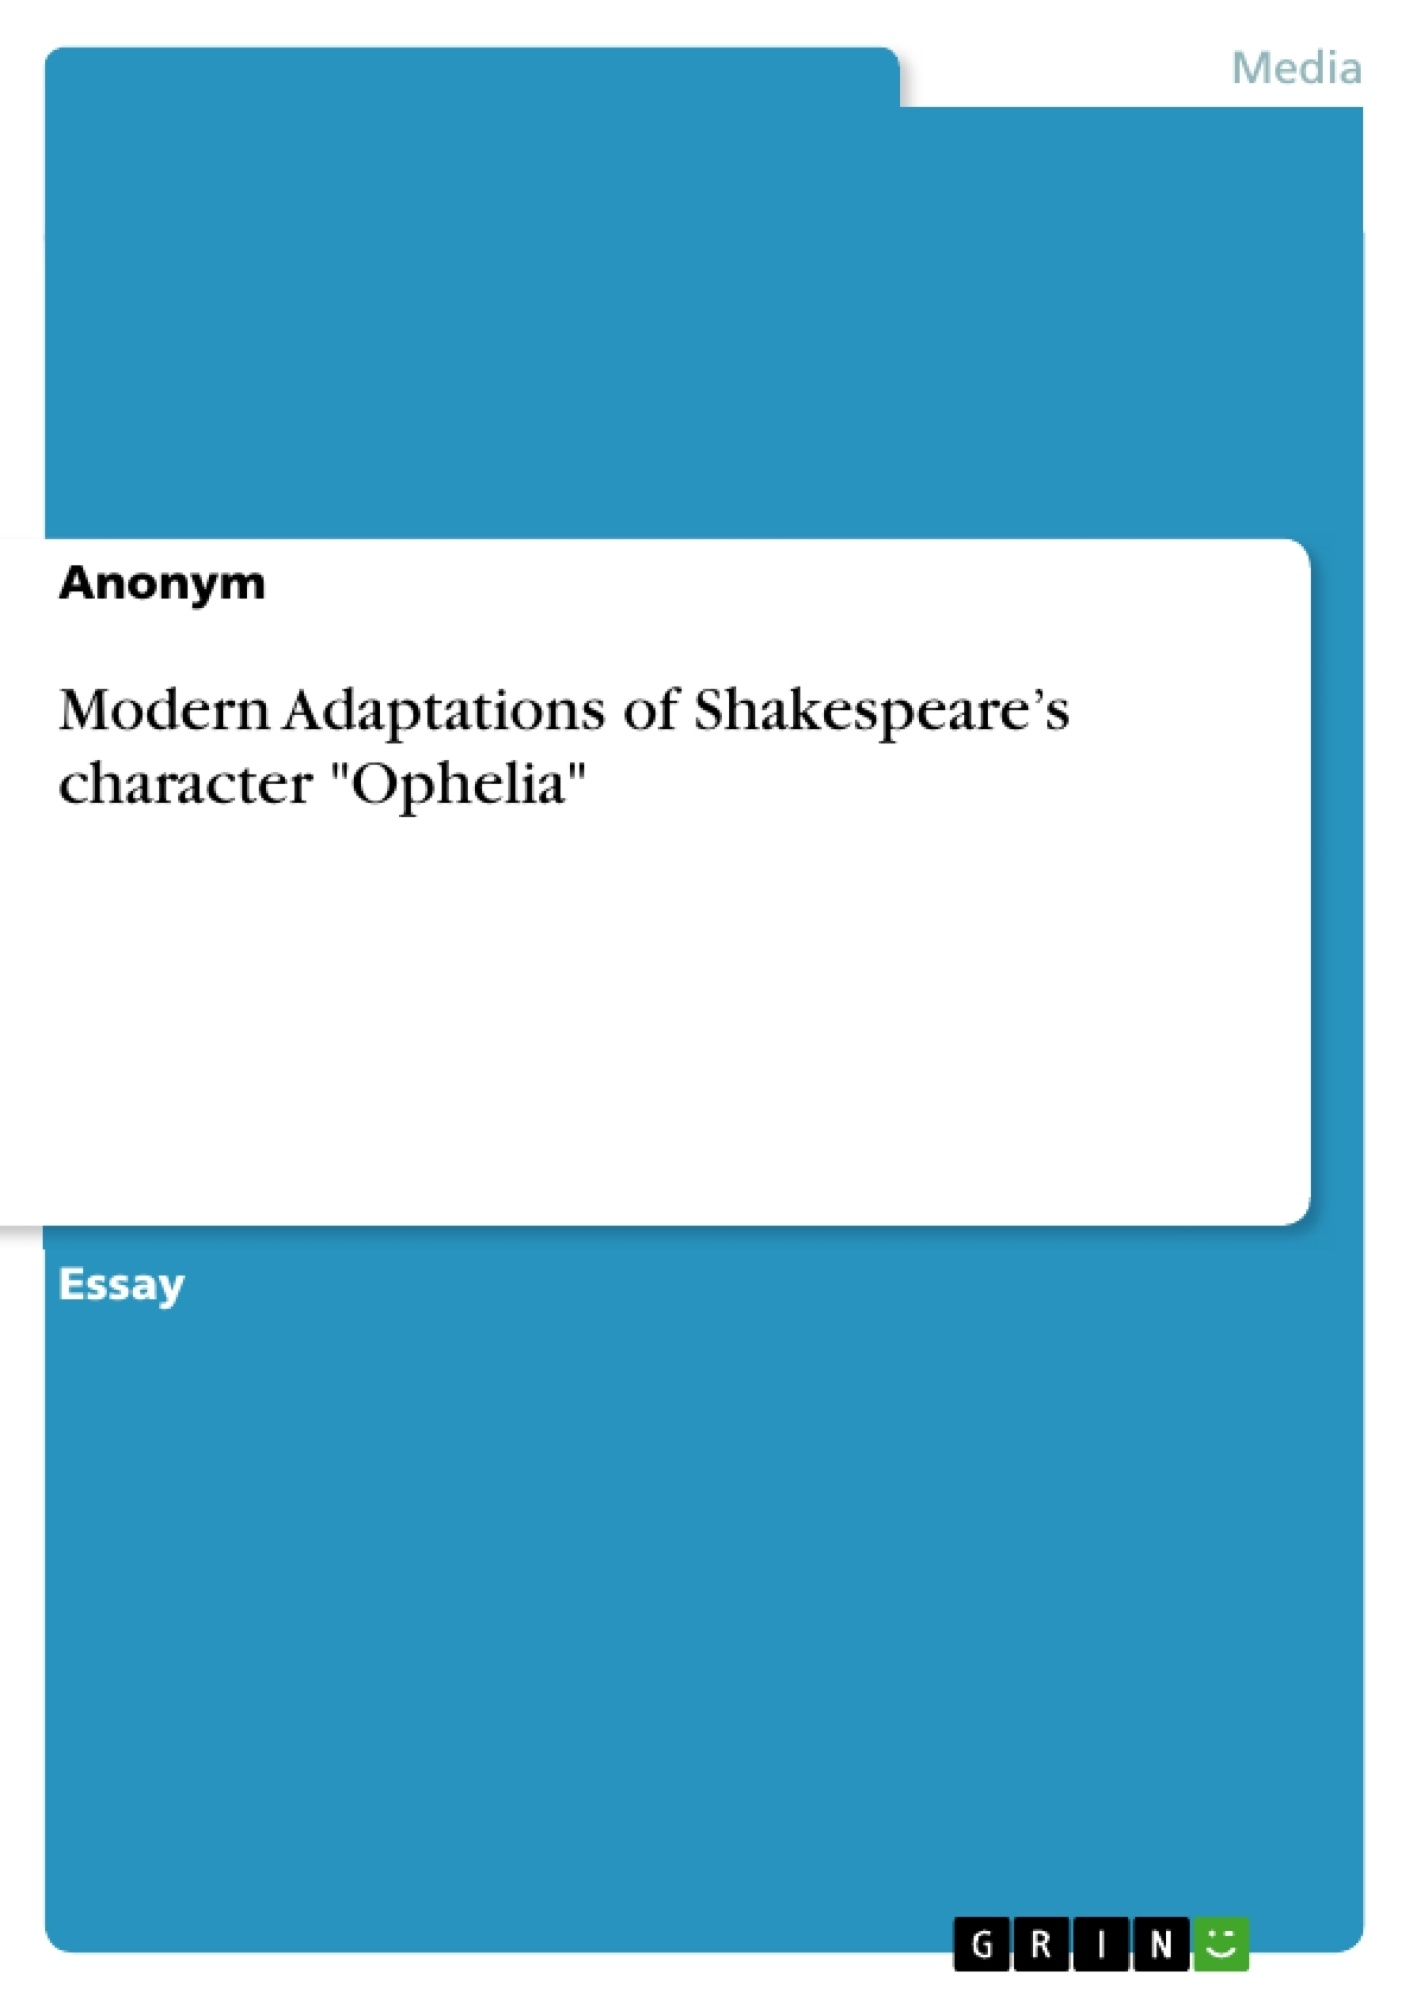 hamlet and ophelias relationship sparknotes